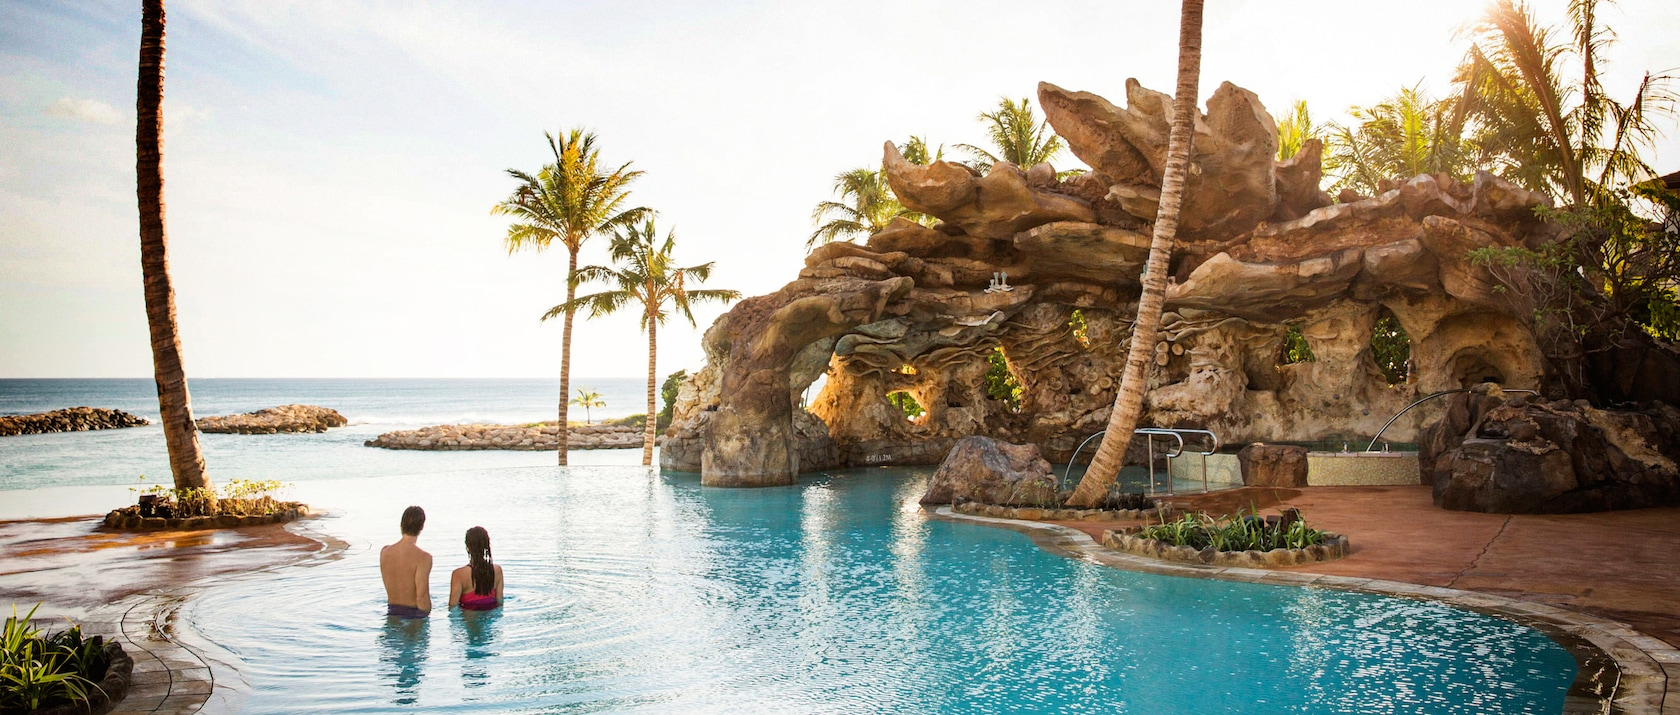 A Rela In The Waters Of Ka Maka Grotto Oceanfront Pool While Looking Out